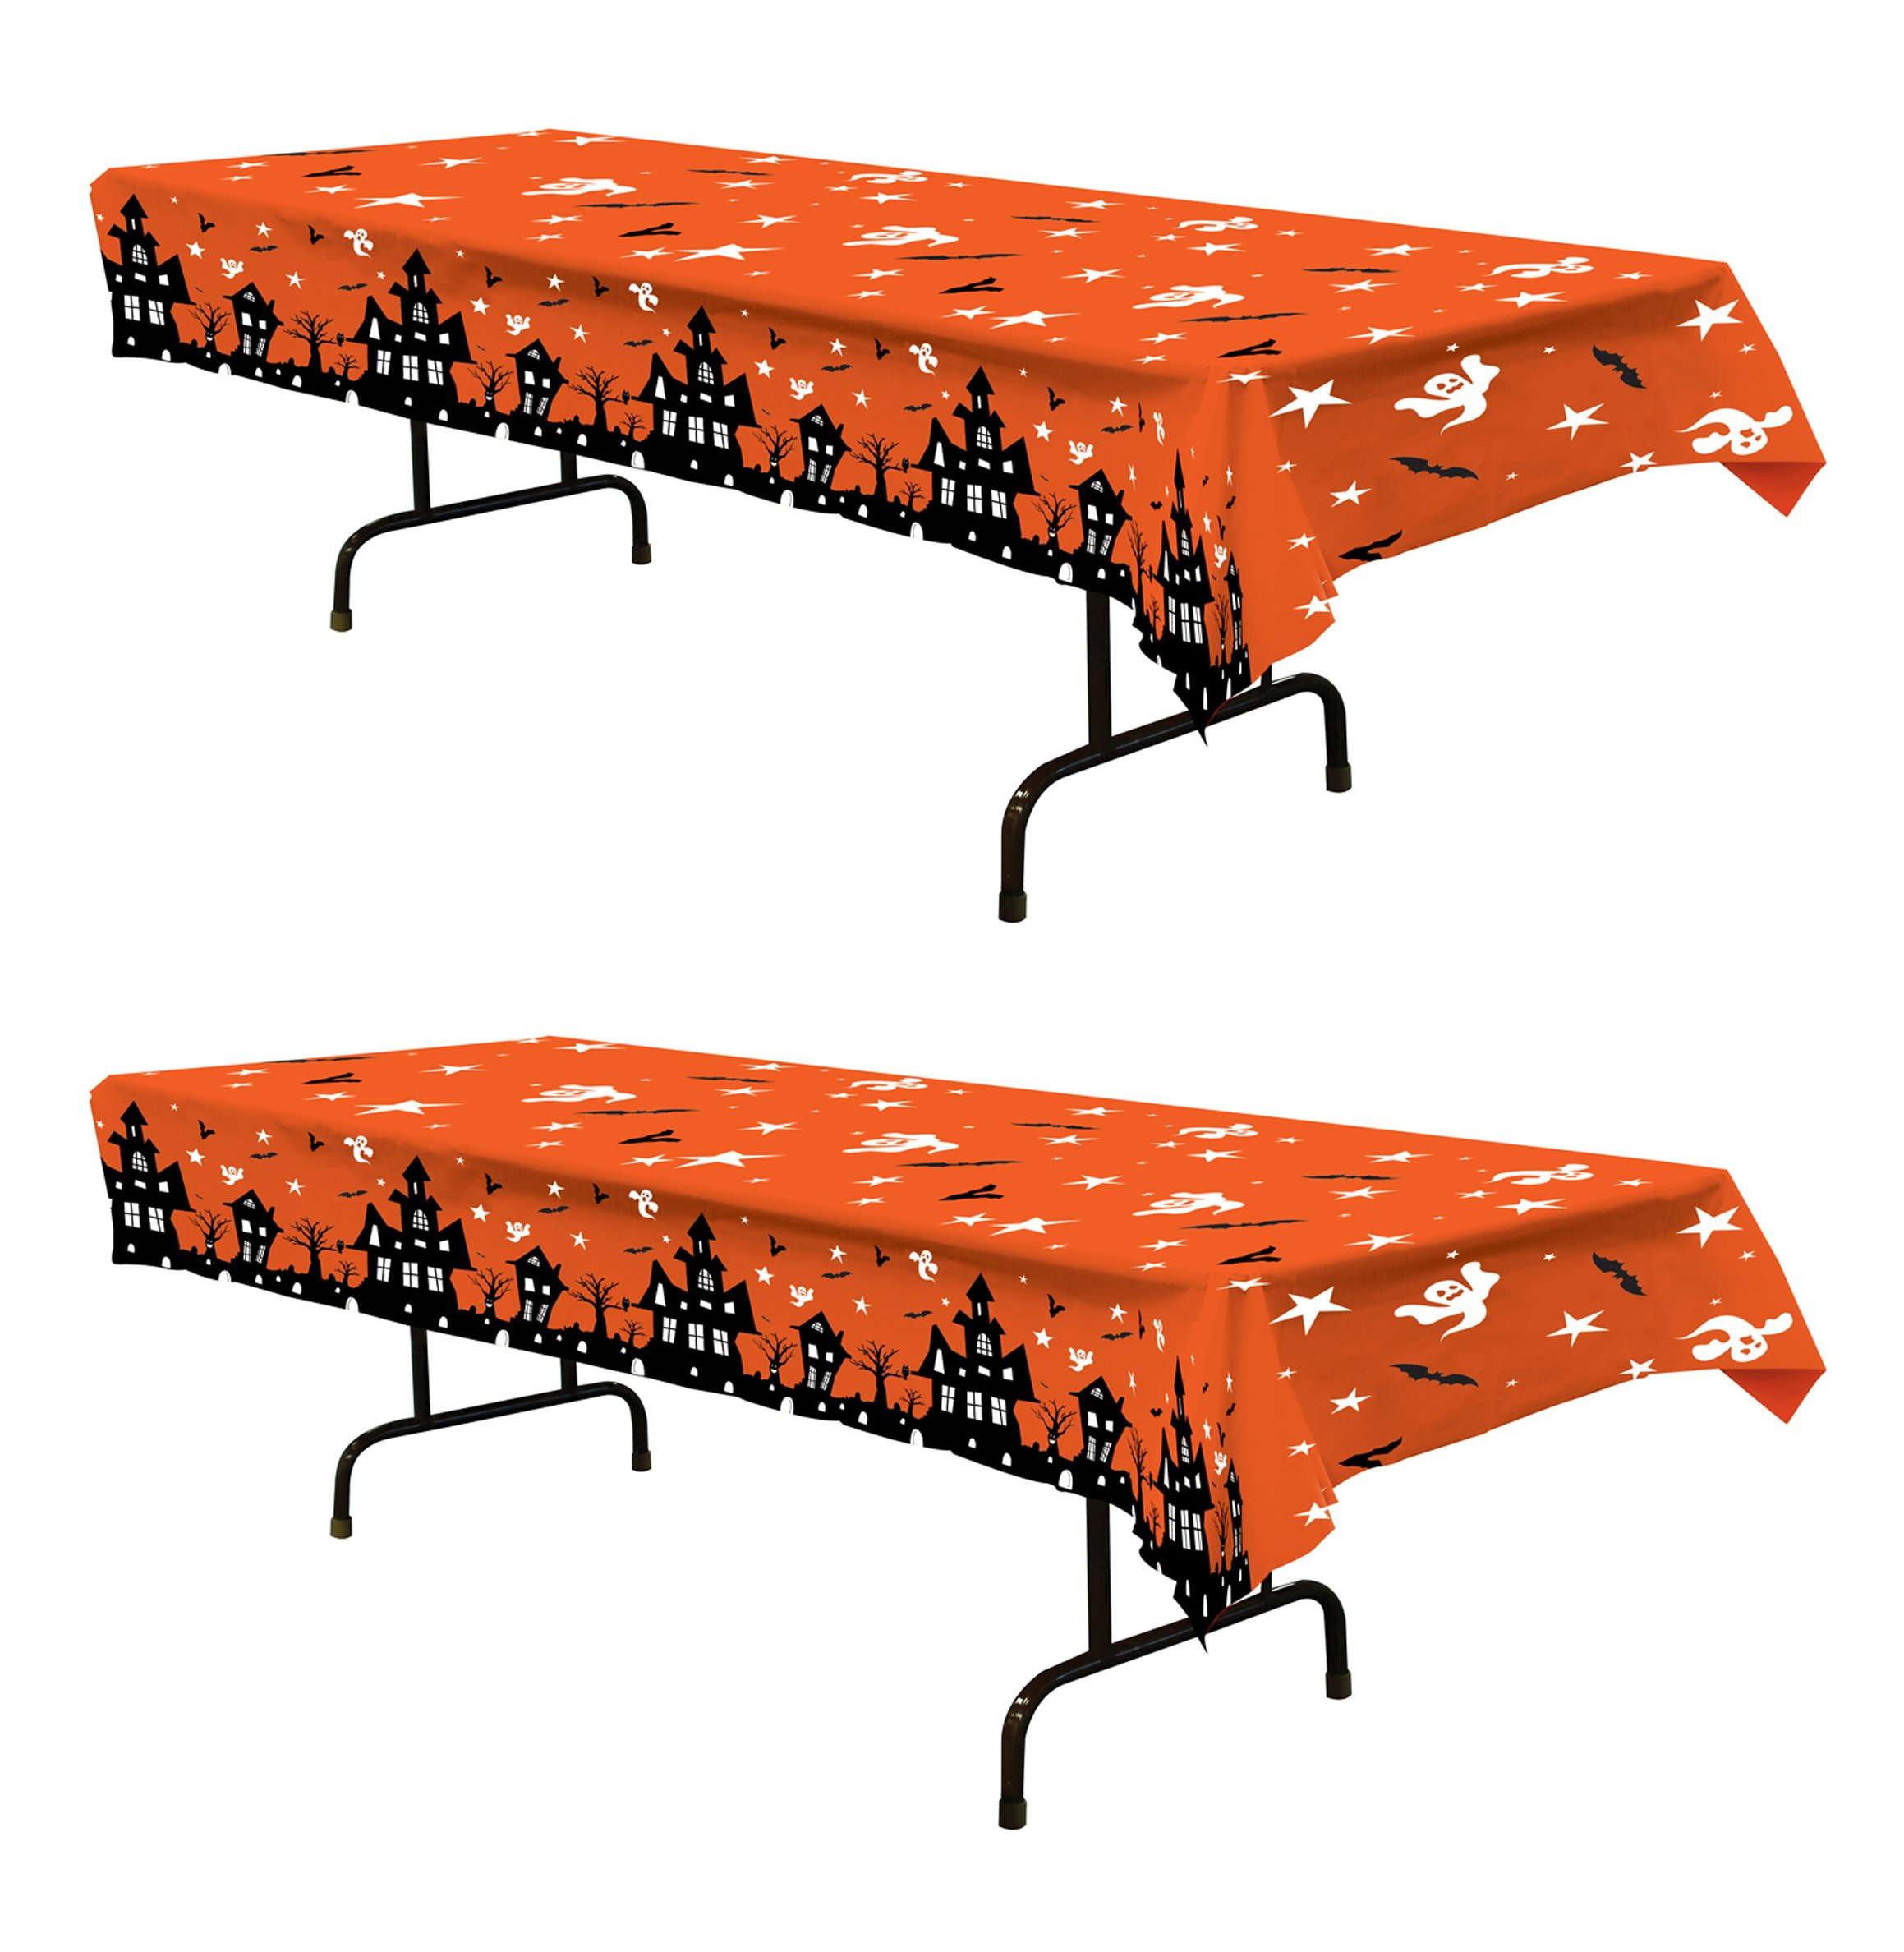 Beistle S00025AZ2 haunted house tablecovers, Orange/Black/White by Beistle